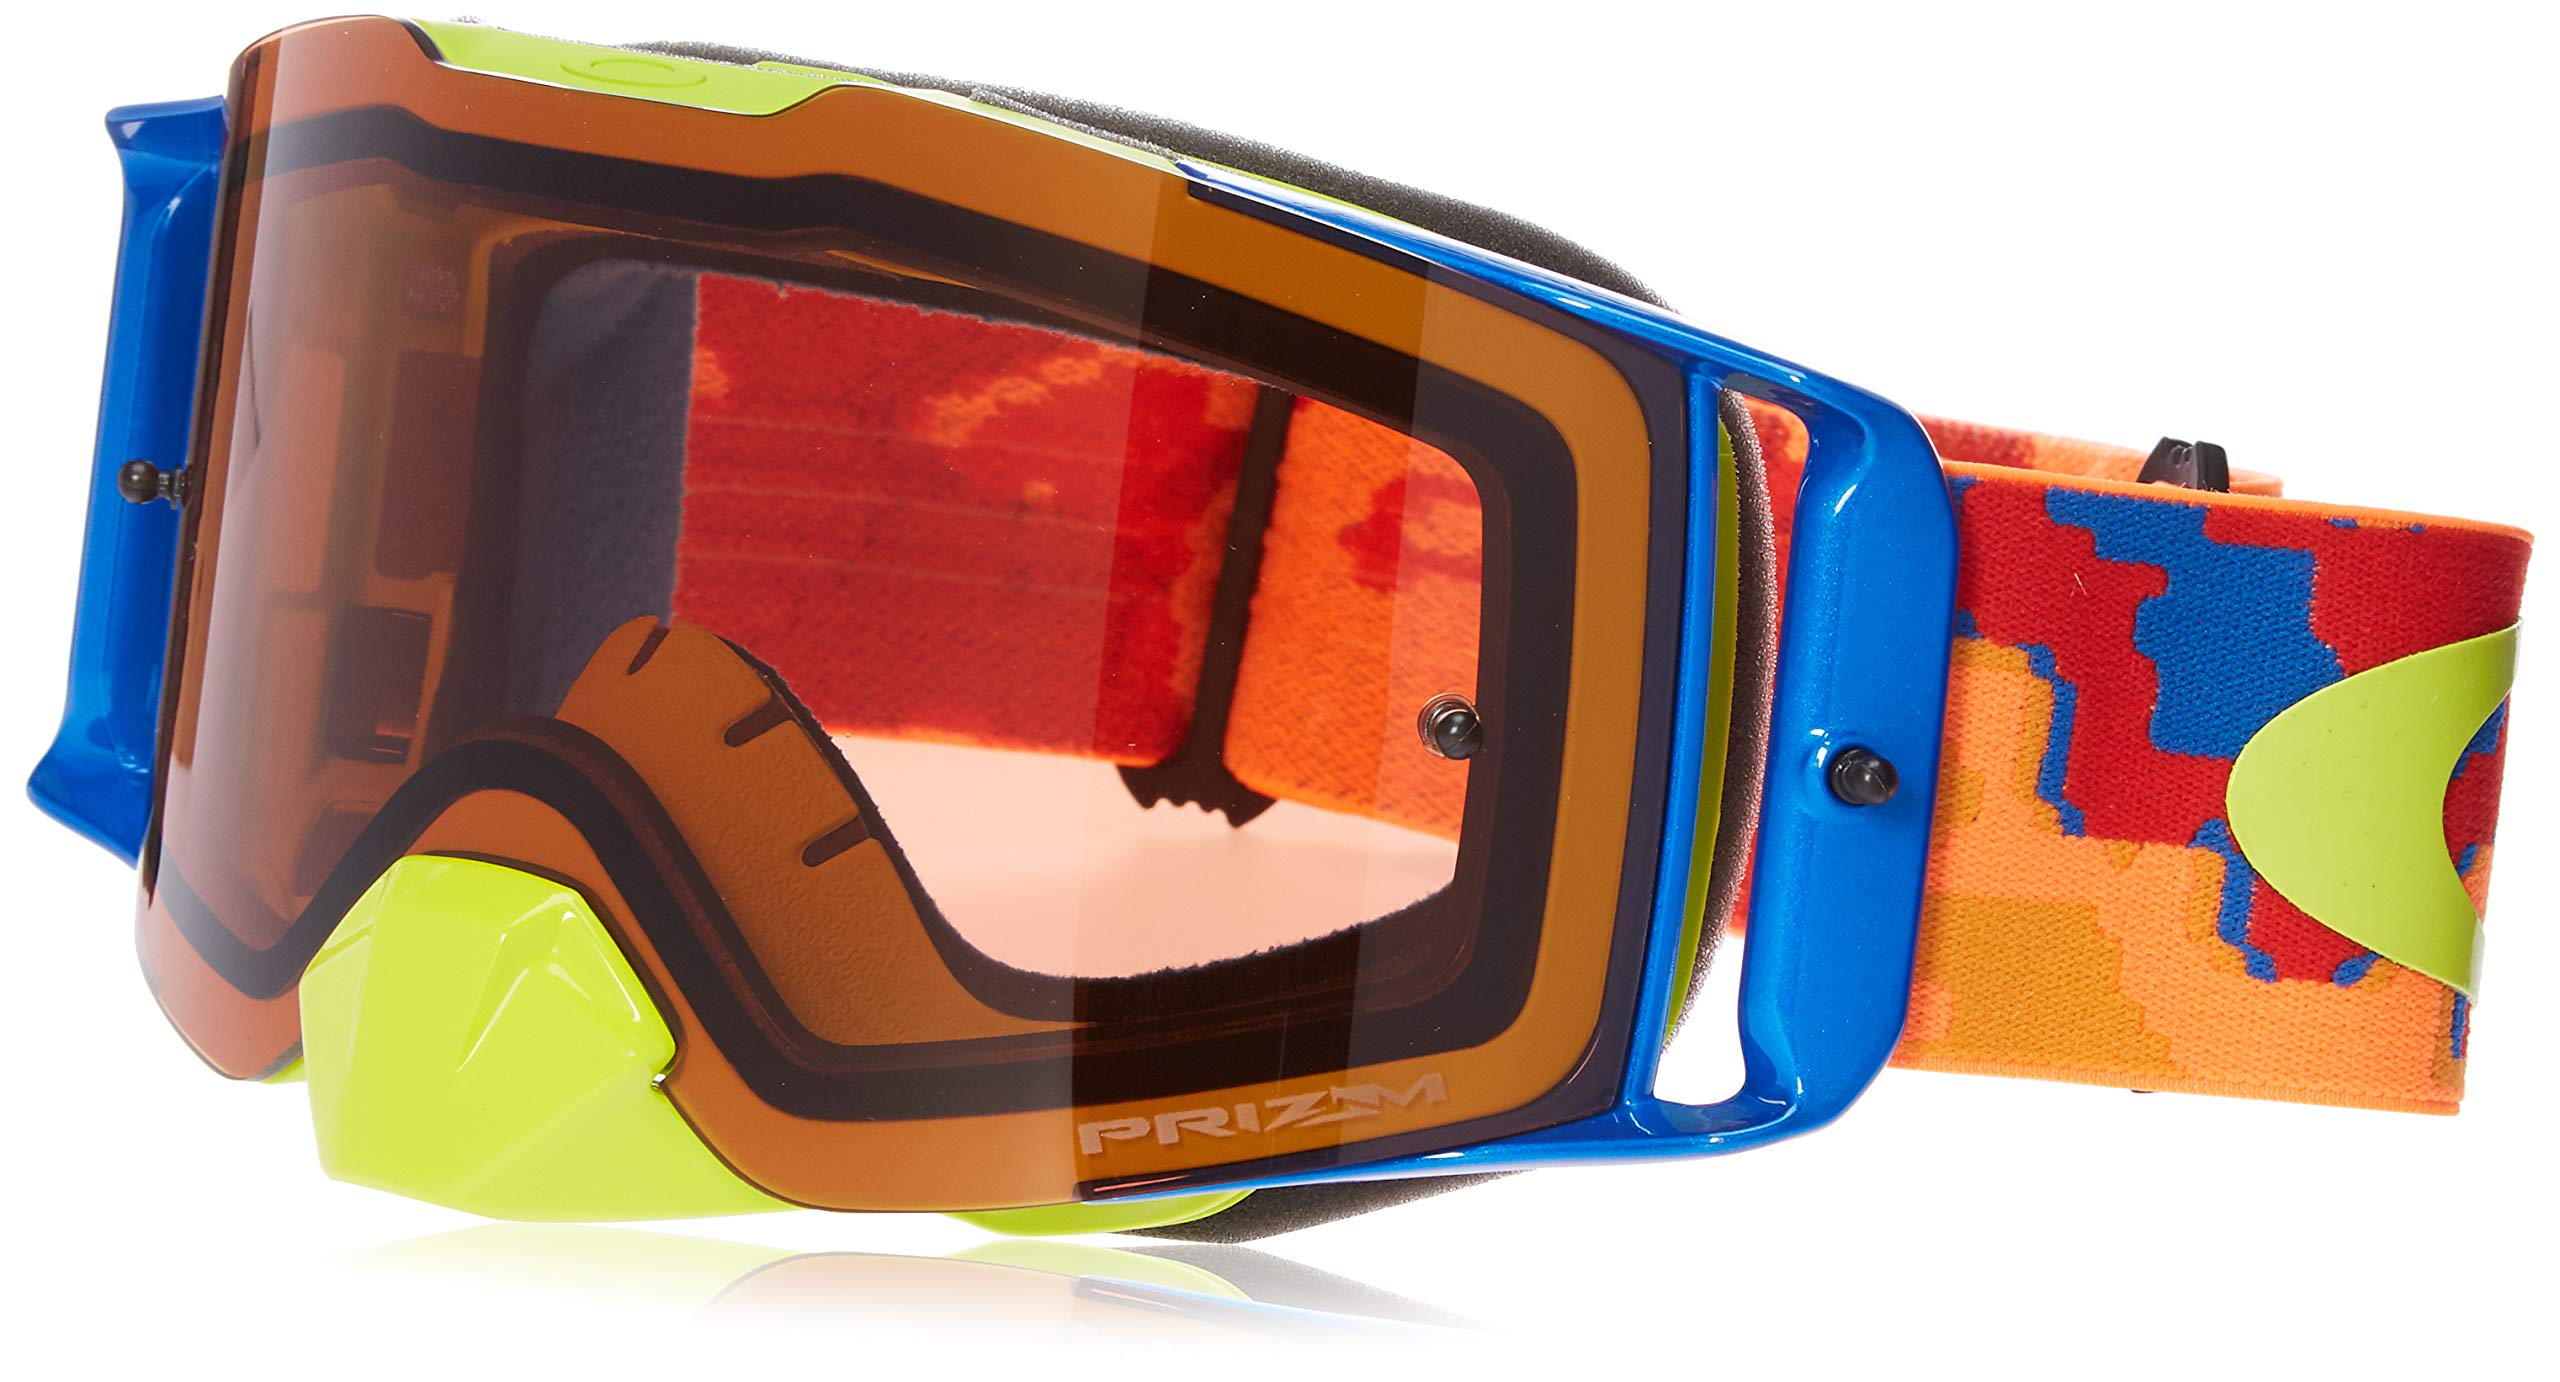 Oakley OO7087-14 FL MX Thermocamo Unisex-Adult Goggles, Large, Orange/Red